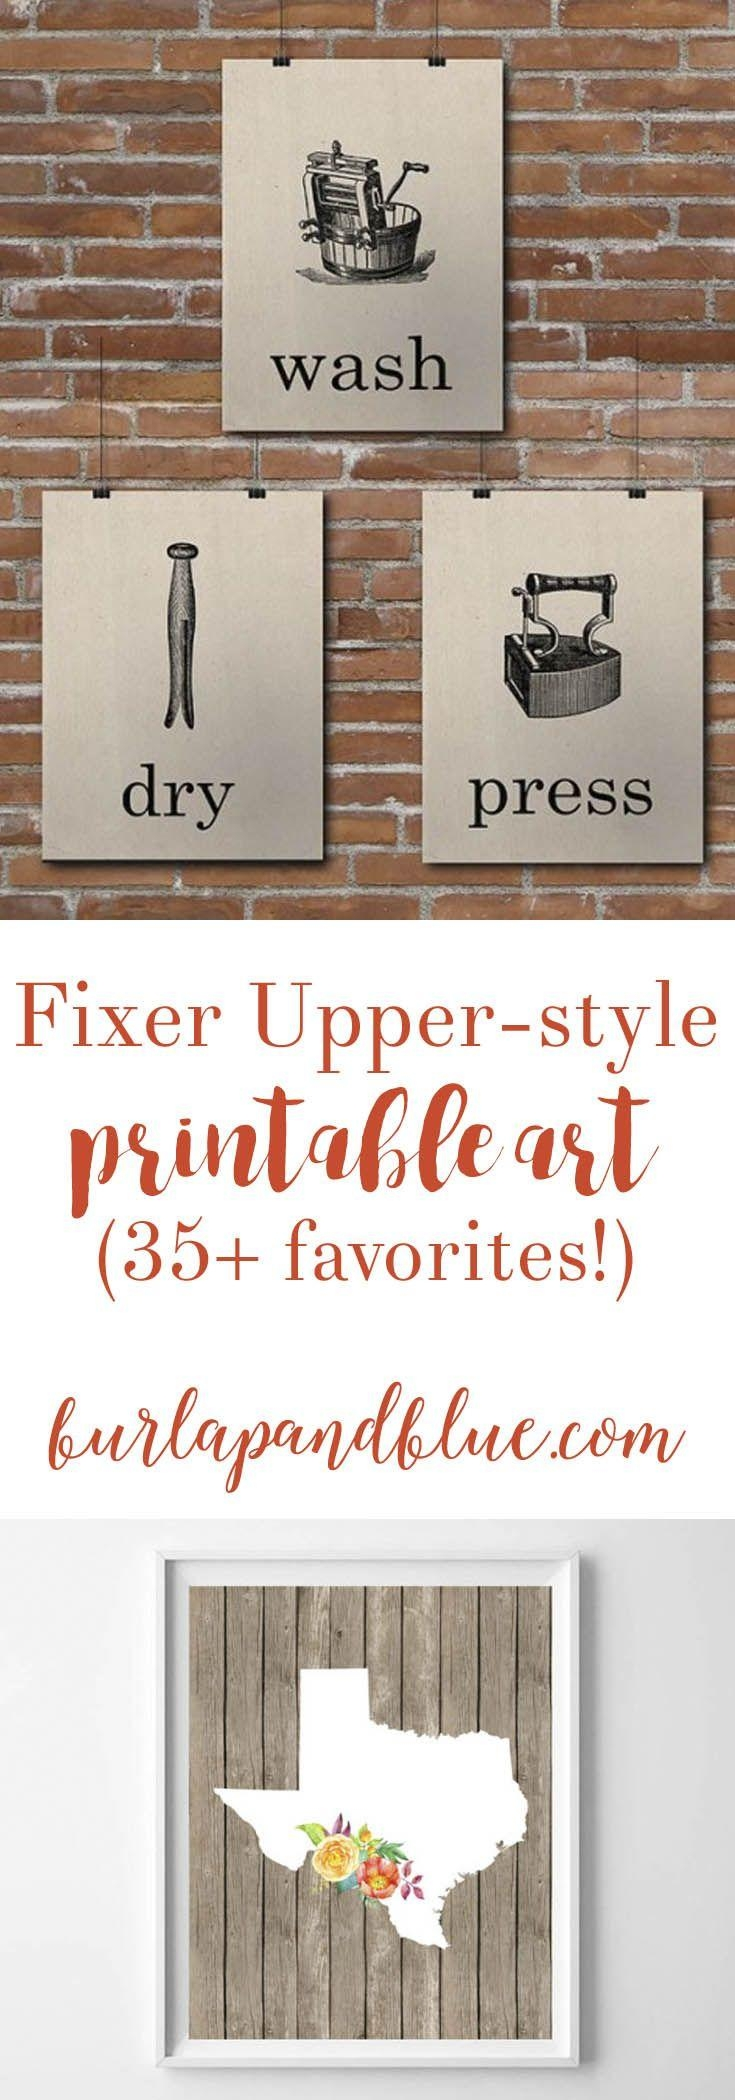 Best 25+ Laundry Room Wall Decor Ideas Only On Pinterest | Laundry Inside Laundry Room Wall Art Decors (Image 6 of 20)